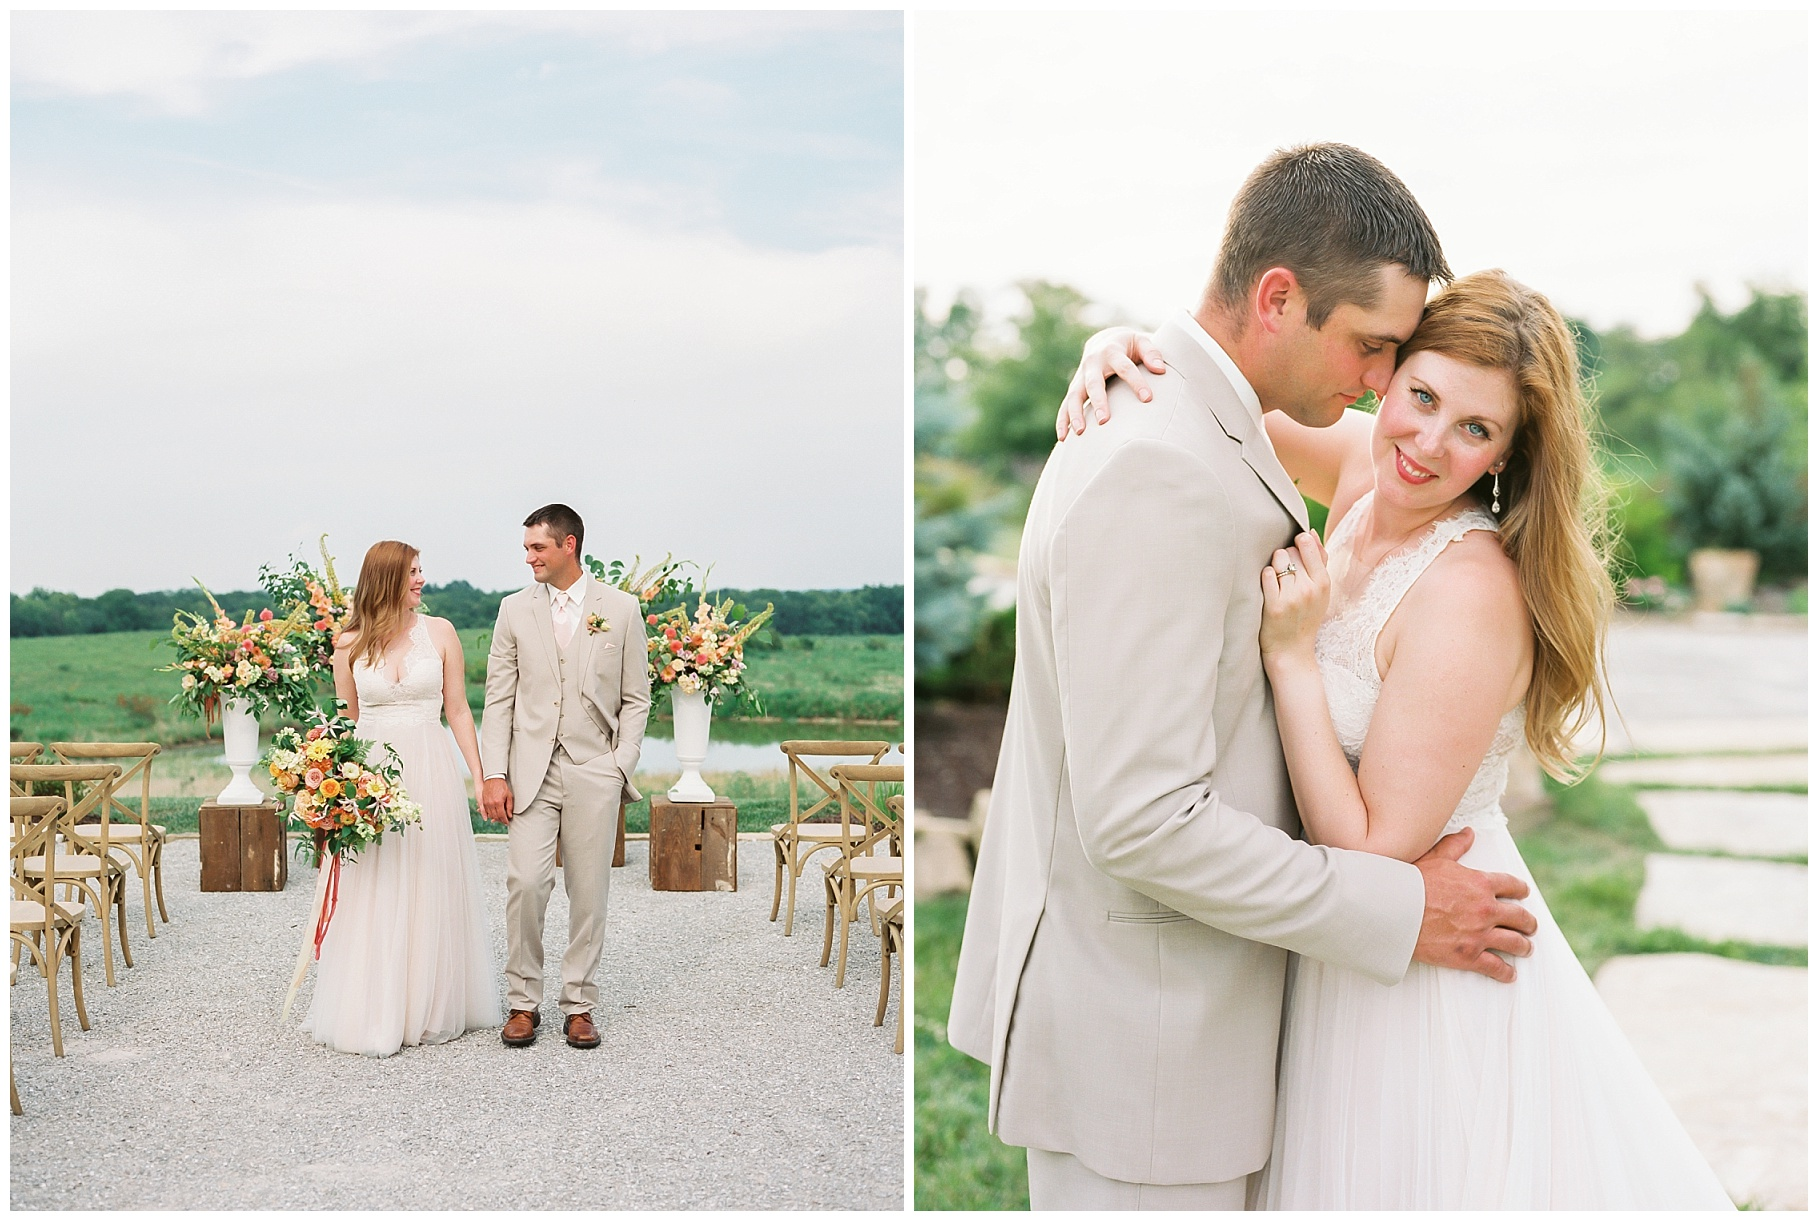 Late Summer Wedding With Pastel Toned Soiree at Blue Bell Farm by Kelsi Kliethermes Photography Best Columbia Missouri Wedding Photographer_0090.jpg